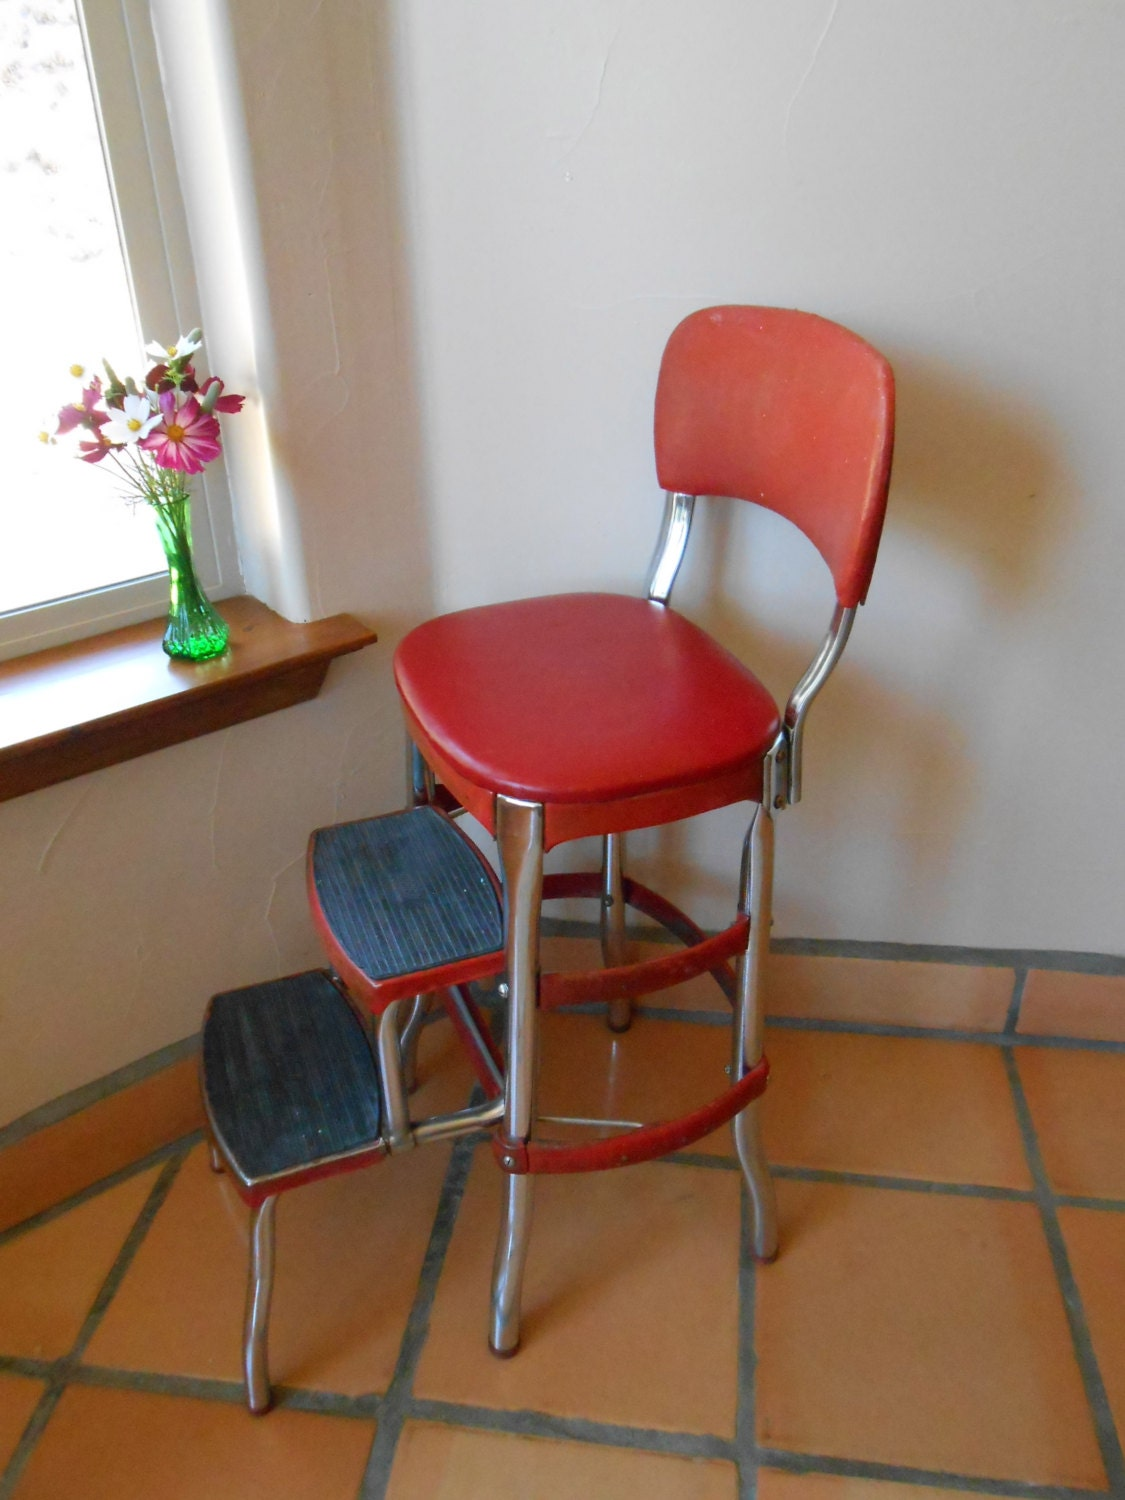 Step Stool Cosco Vintage 1950s Era Red And Chrome Step Stool